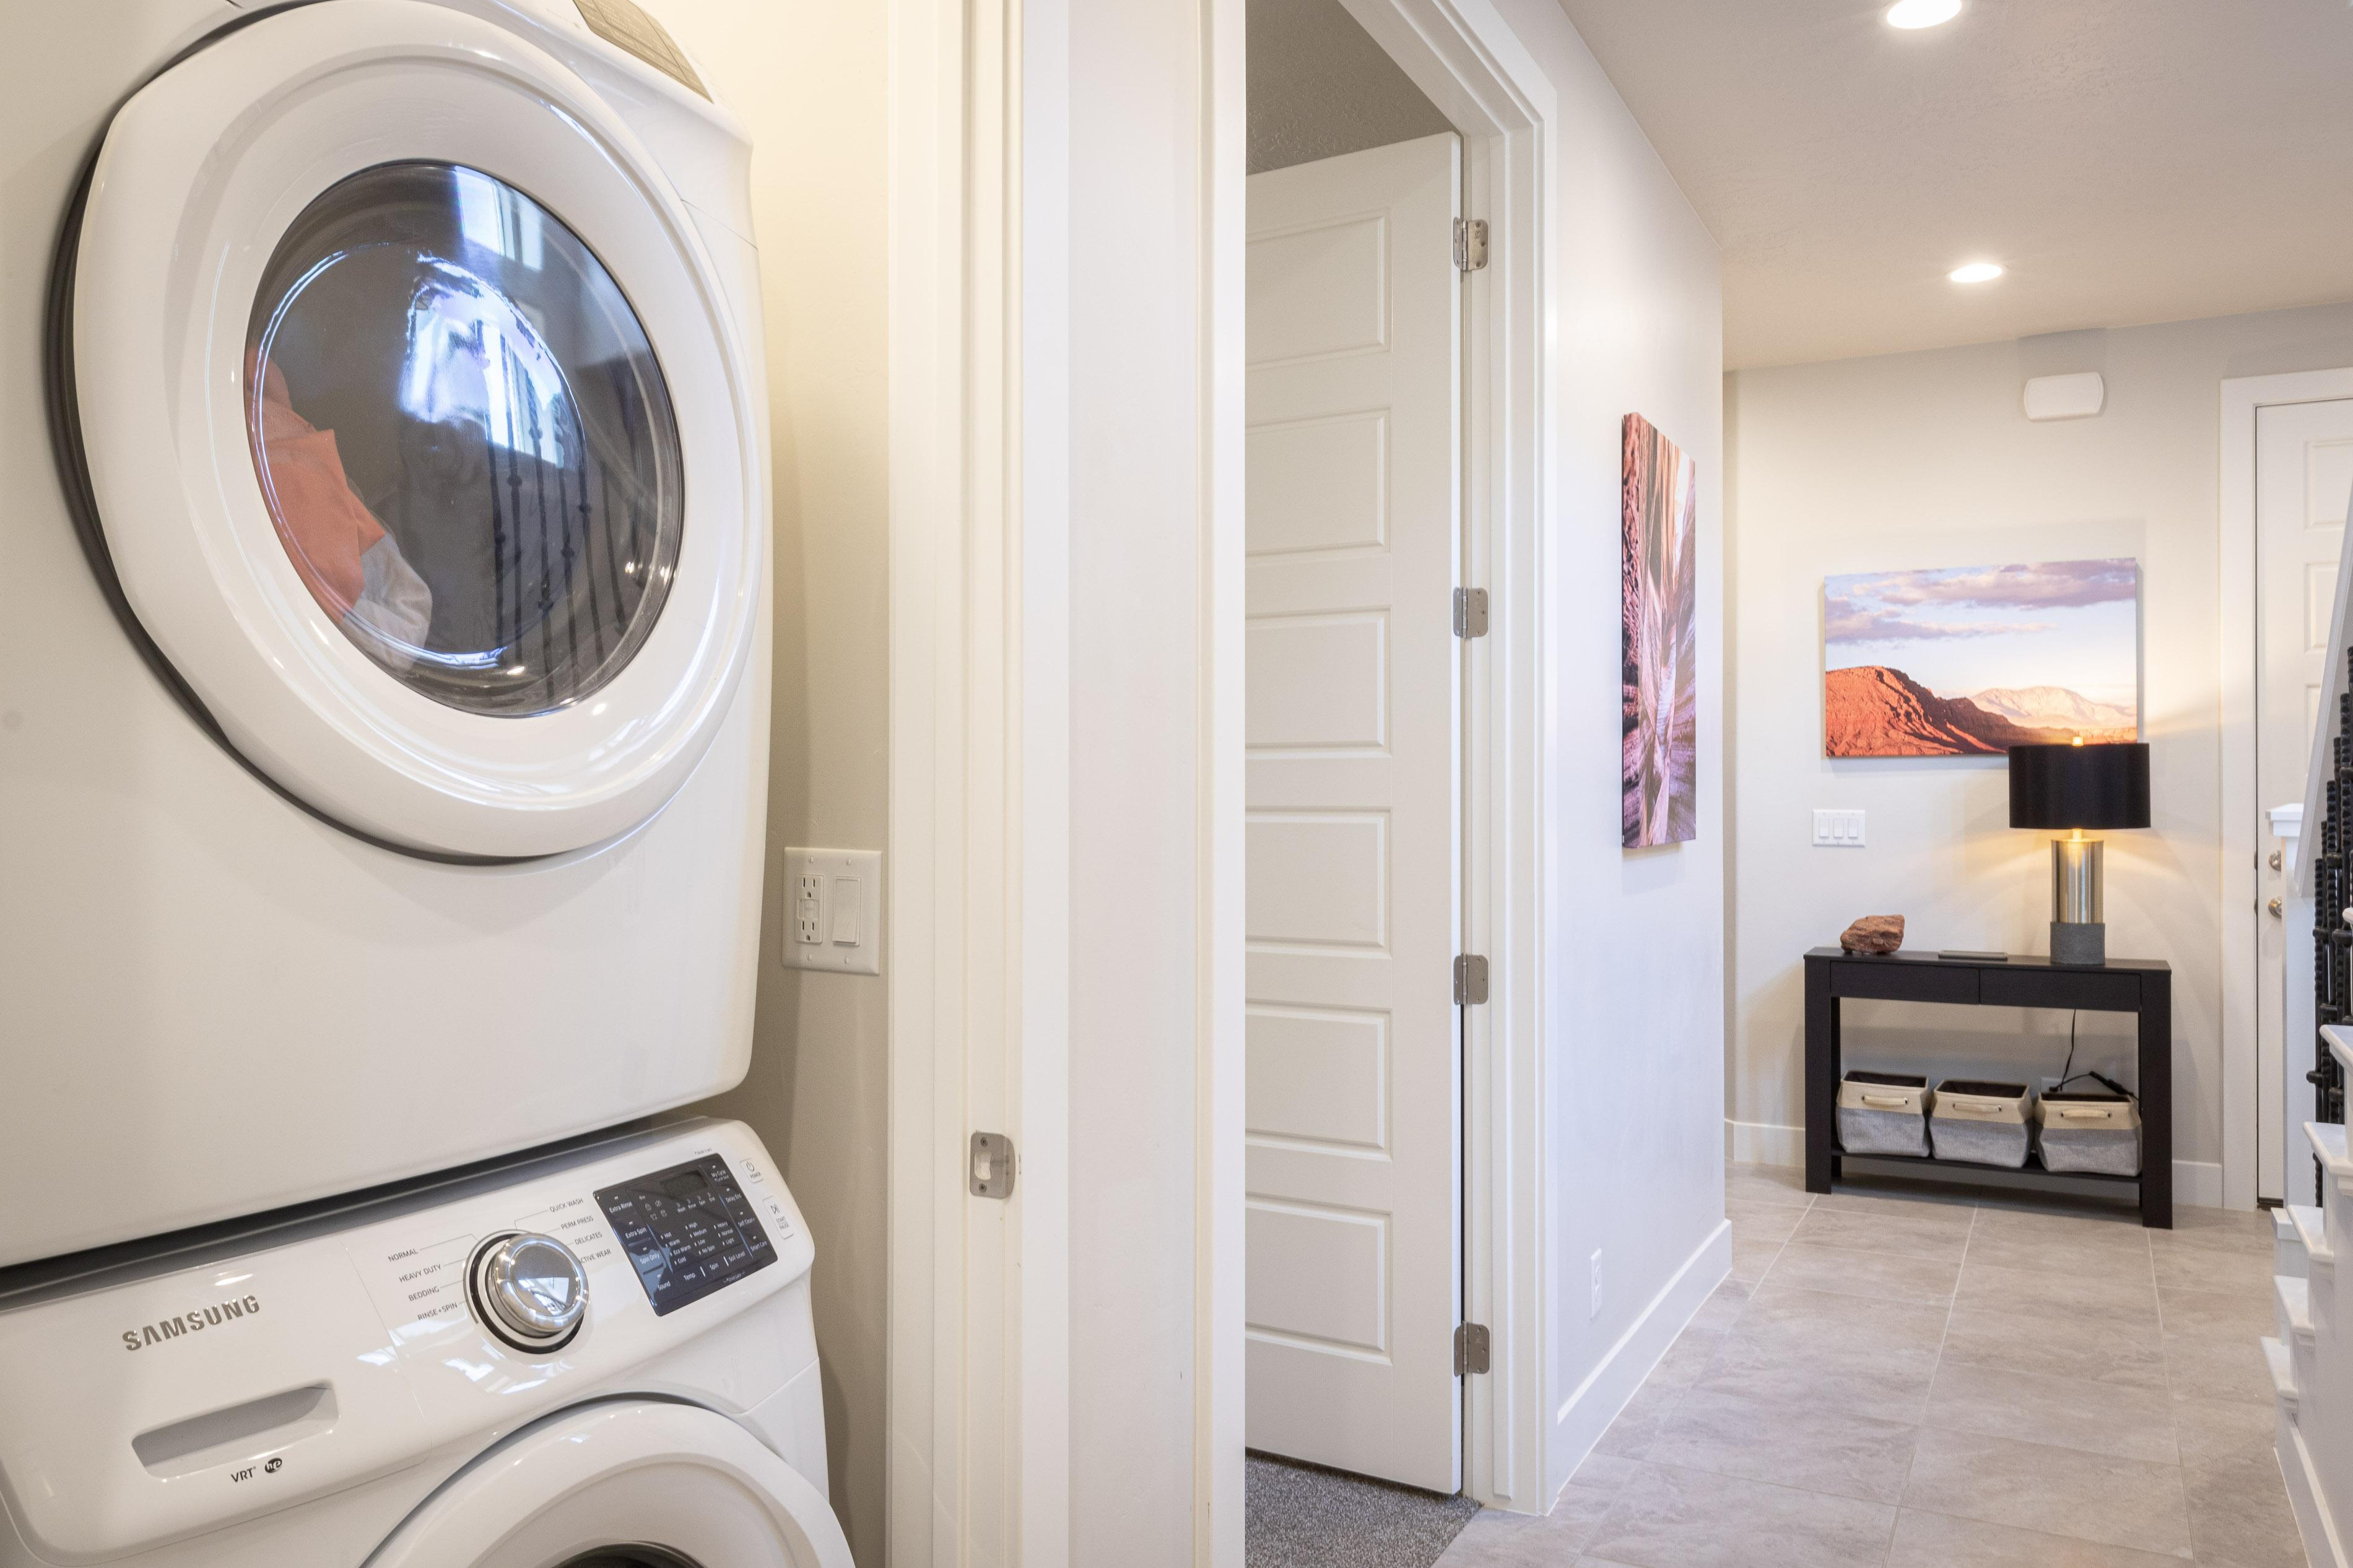 This home includes a washer and dryer to accommodate all your needs.